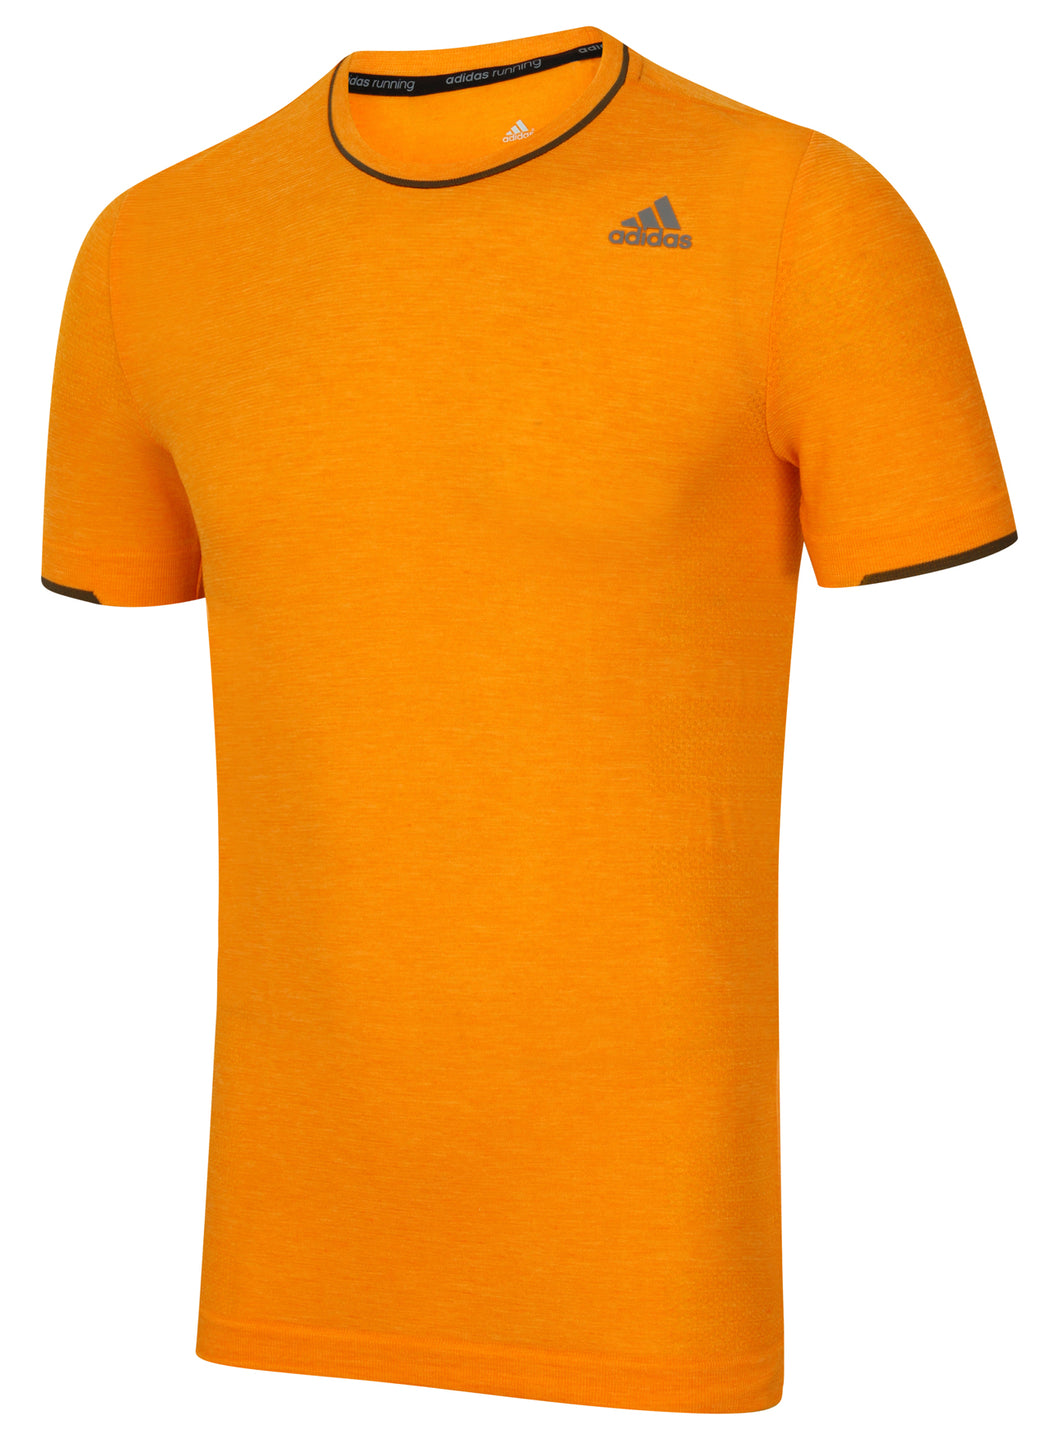 adidas Men's Adistar Primeknit Orange Wool Blend Slim Fit Crew Running T-Shirt